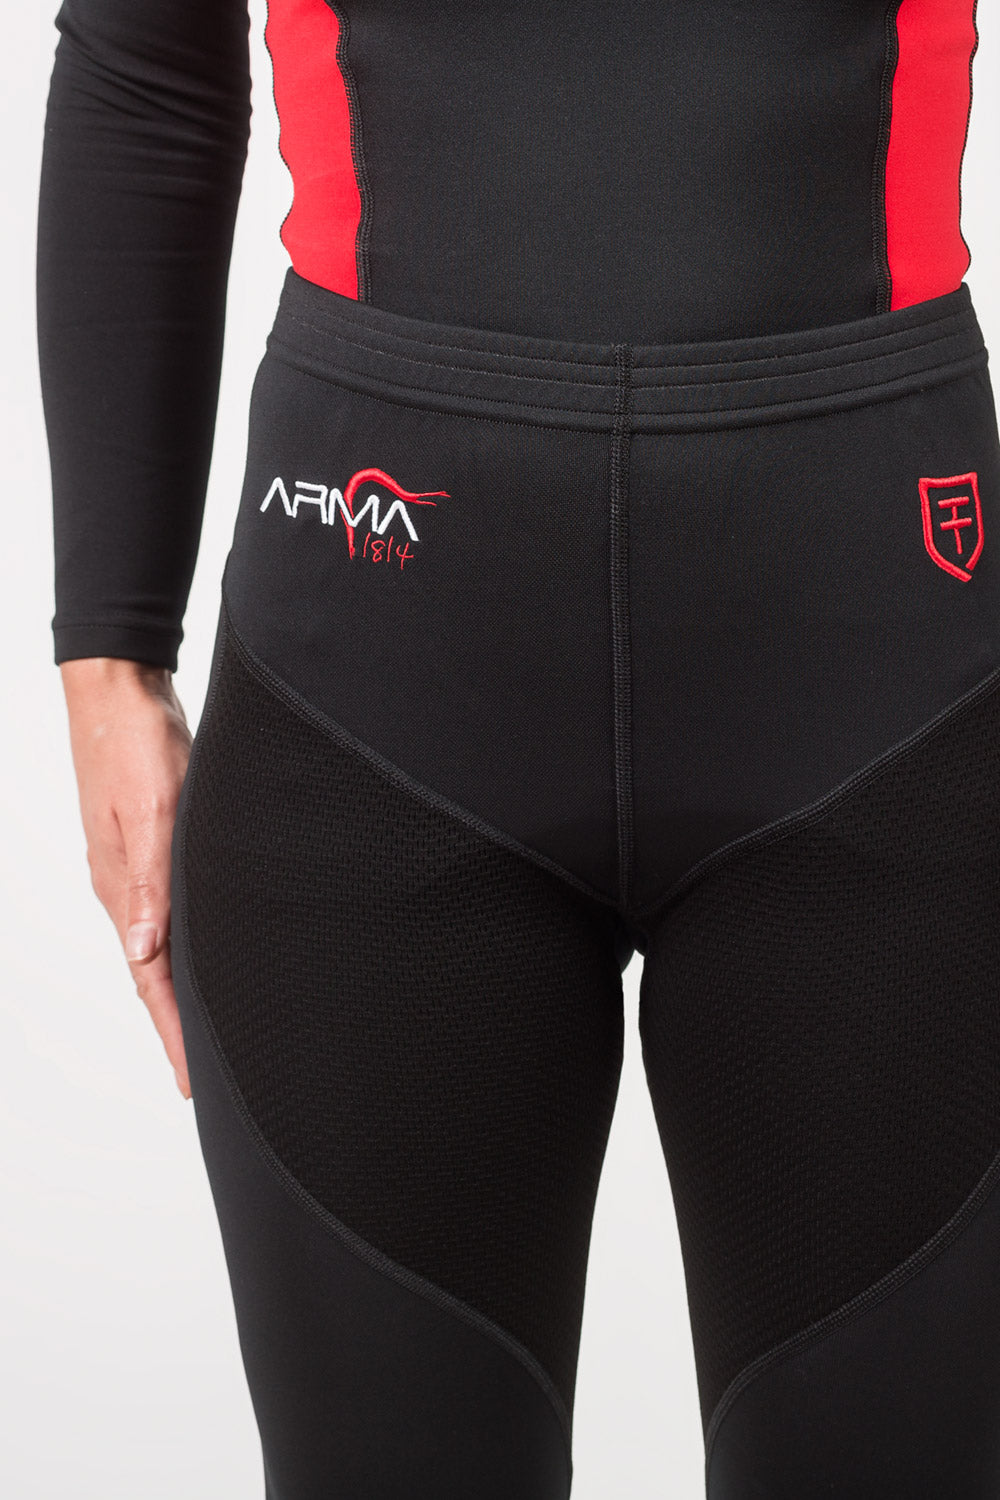 Arma 1814 woman thermal underpants